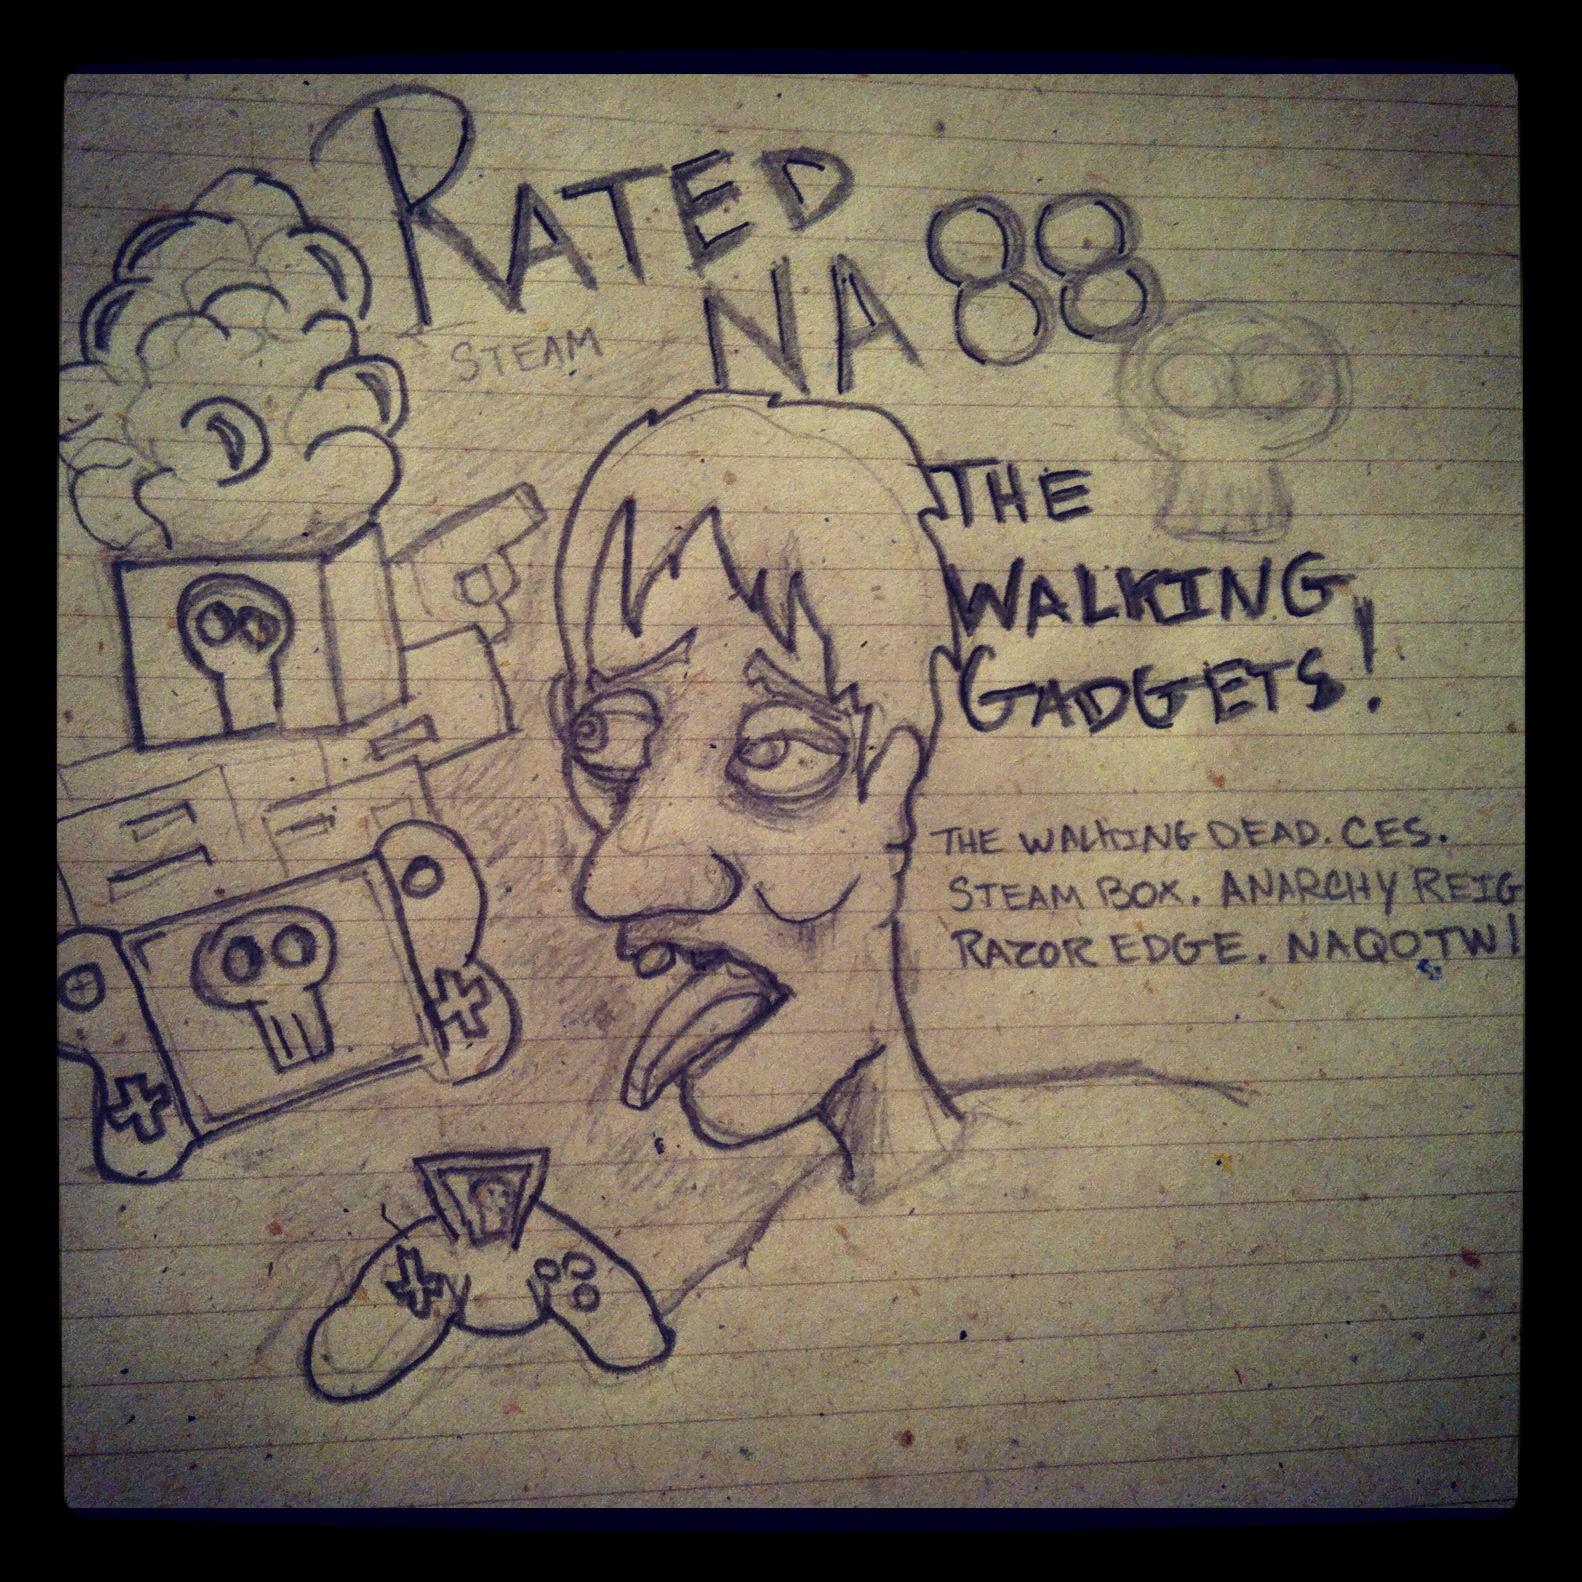 Rated NA 88: The Walking Tech